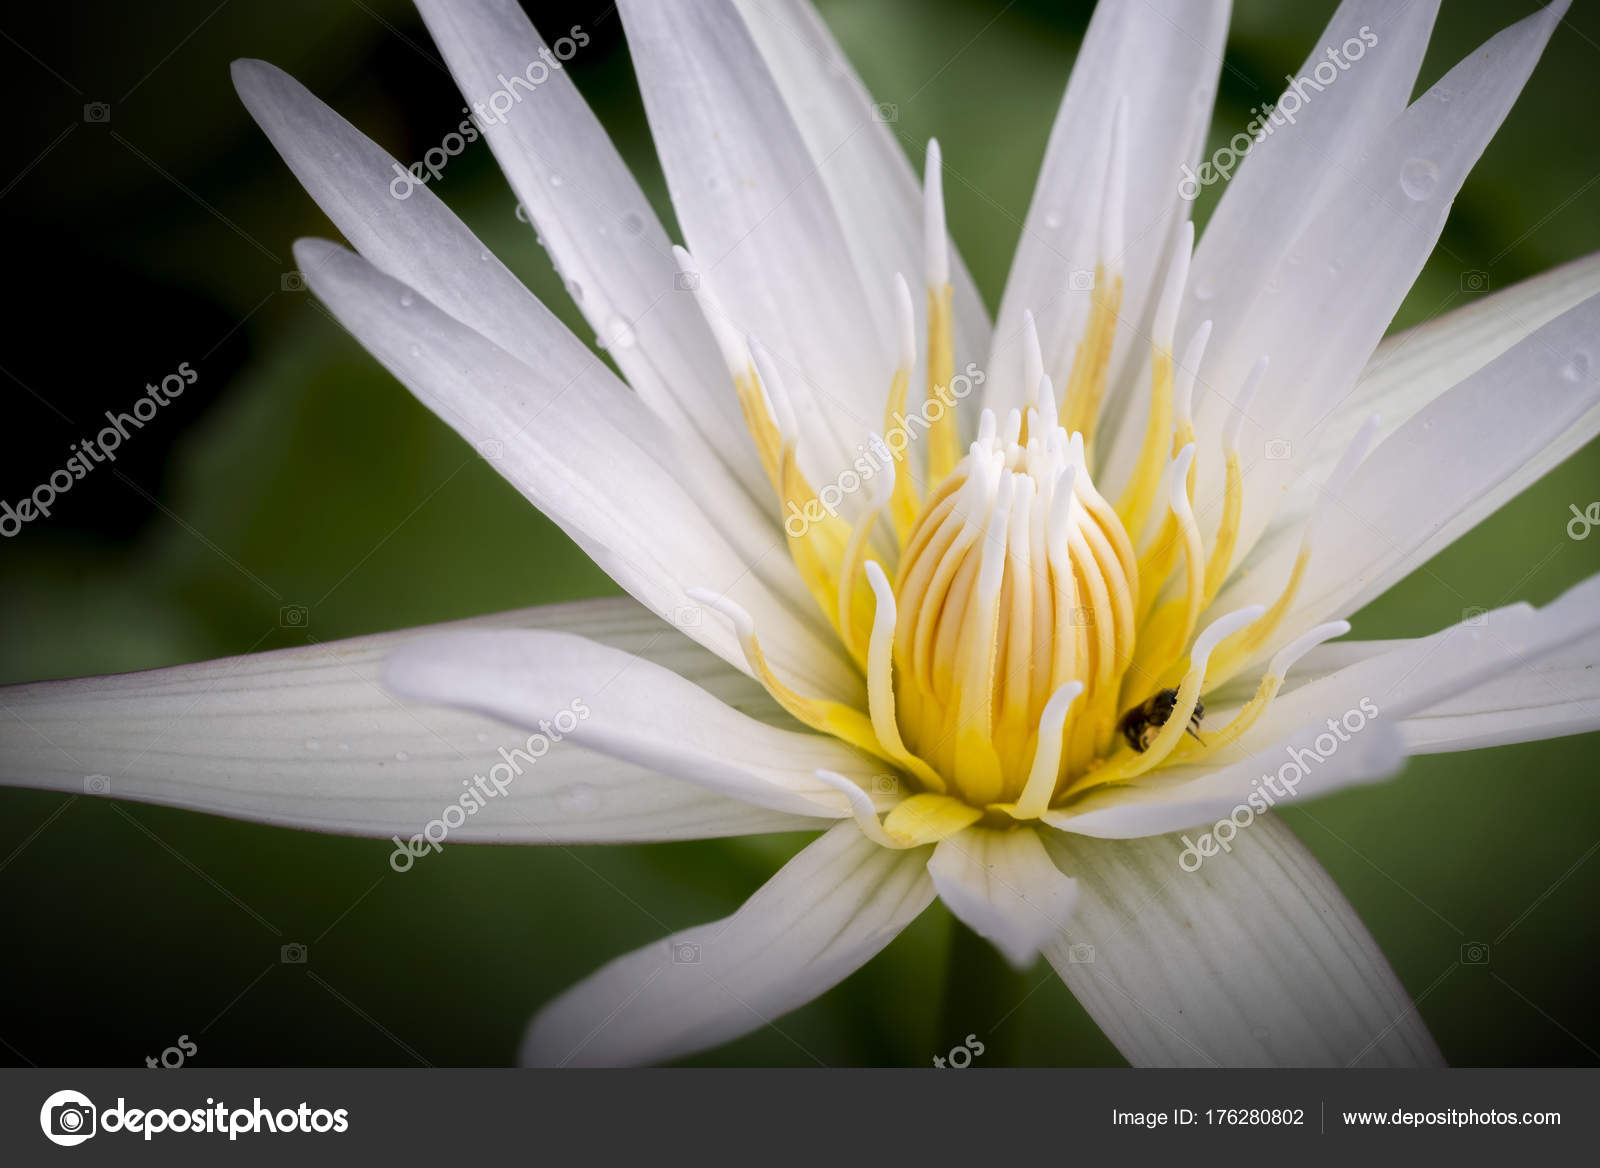 White lotus blossoms or water lily flowers stock photo bigjom white lotus blossoms or water lily flowers stock photo izmirmasajfo